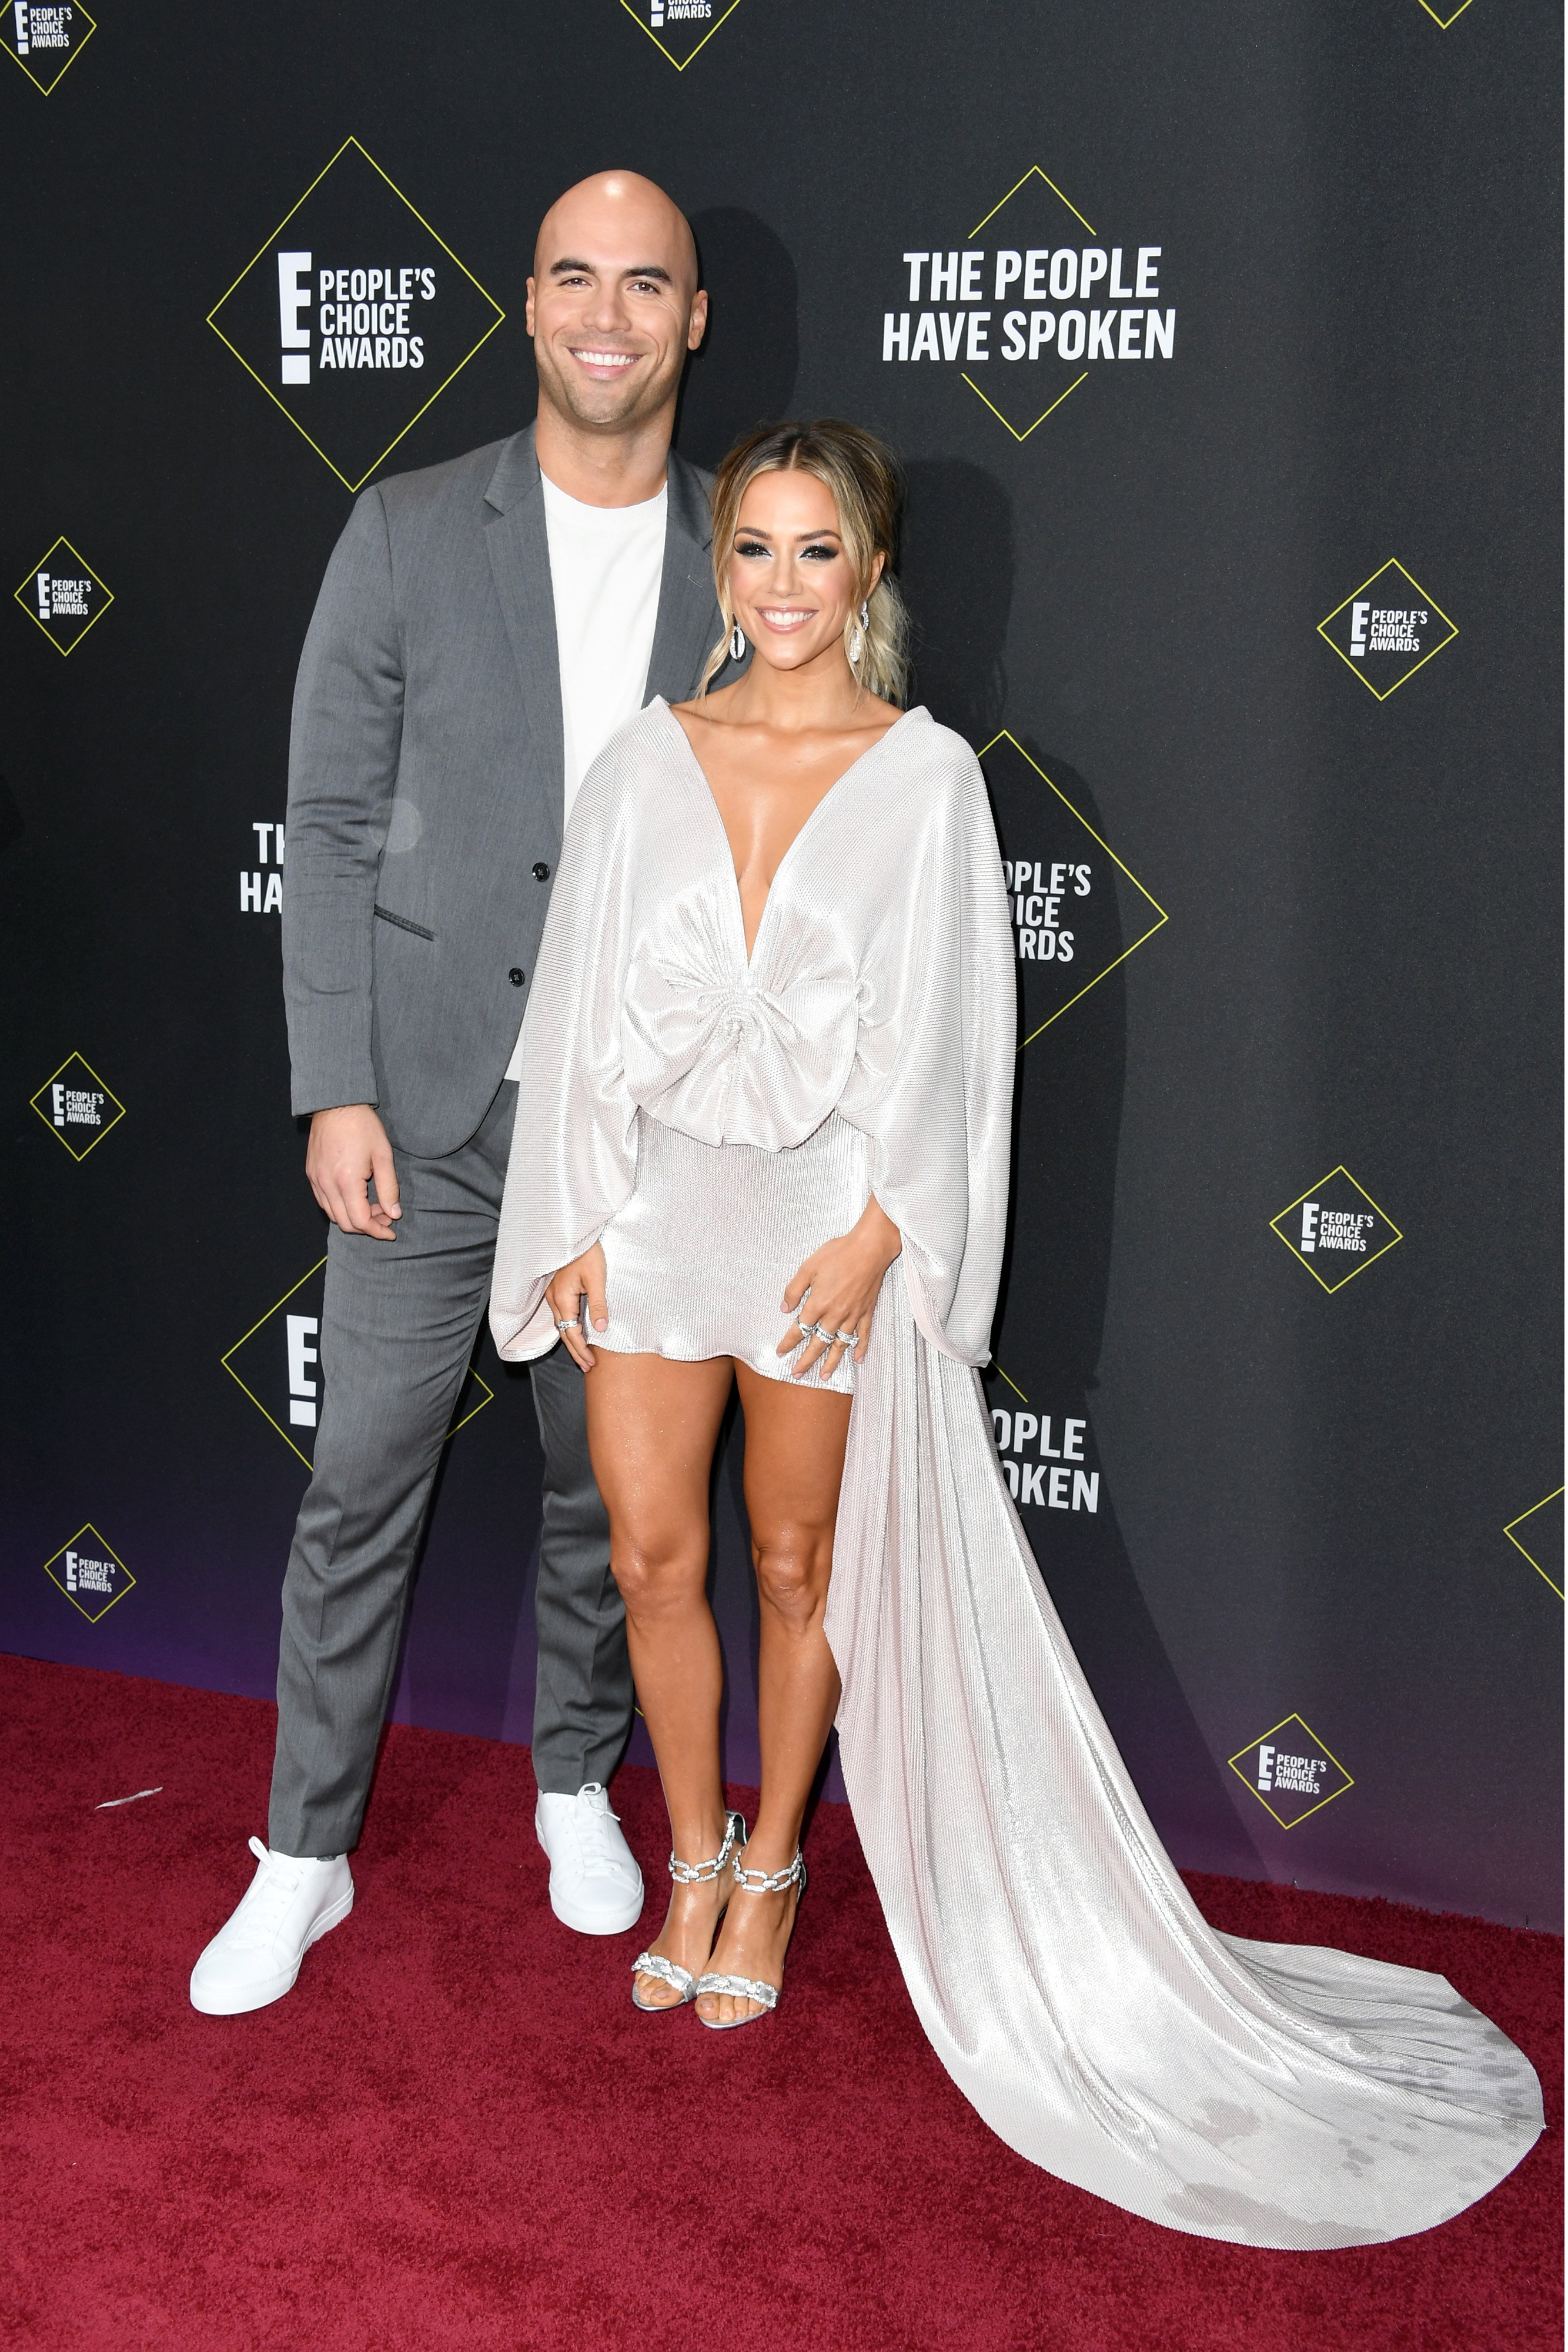 Jana Kramer and Mike Caussin attend the 2019 E! People's Choice Awards in California | Photo: Getty Images